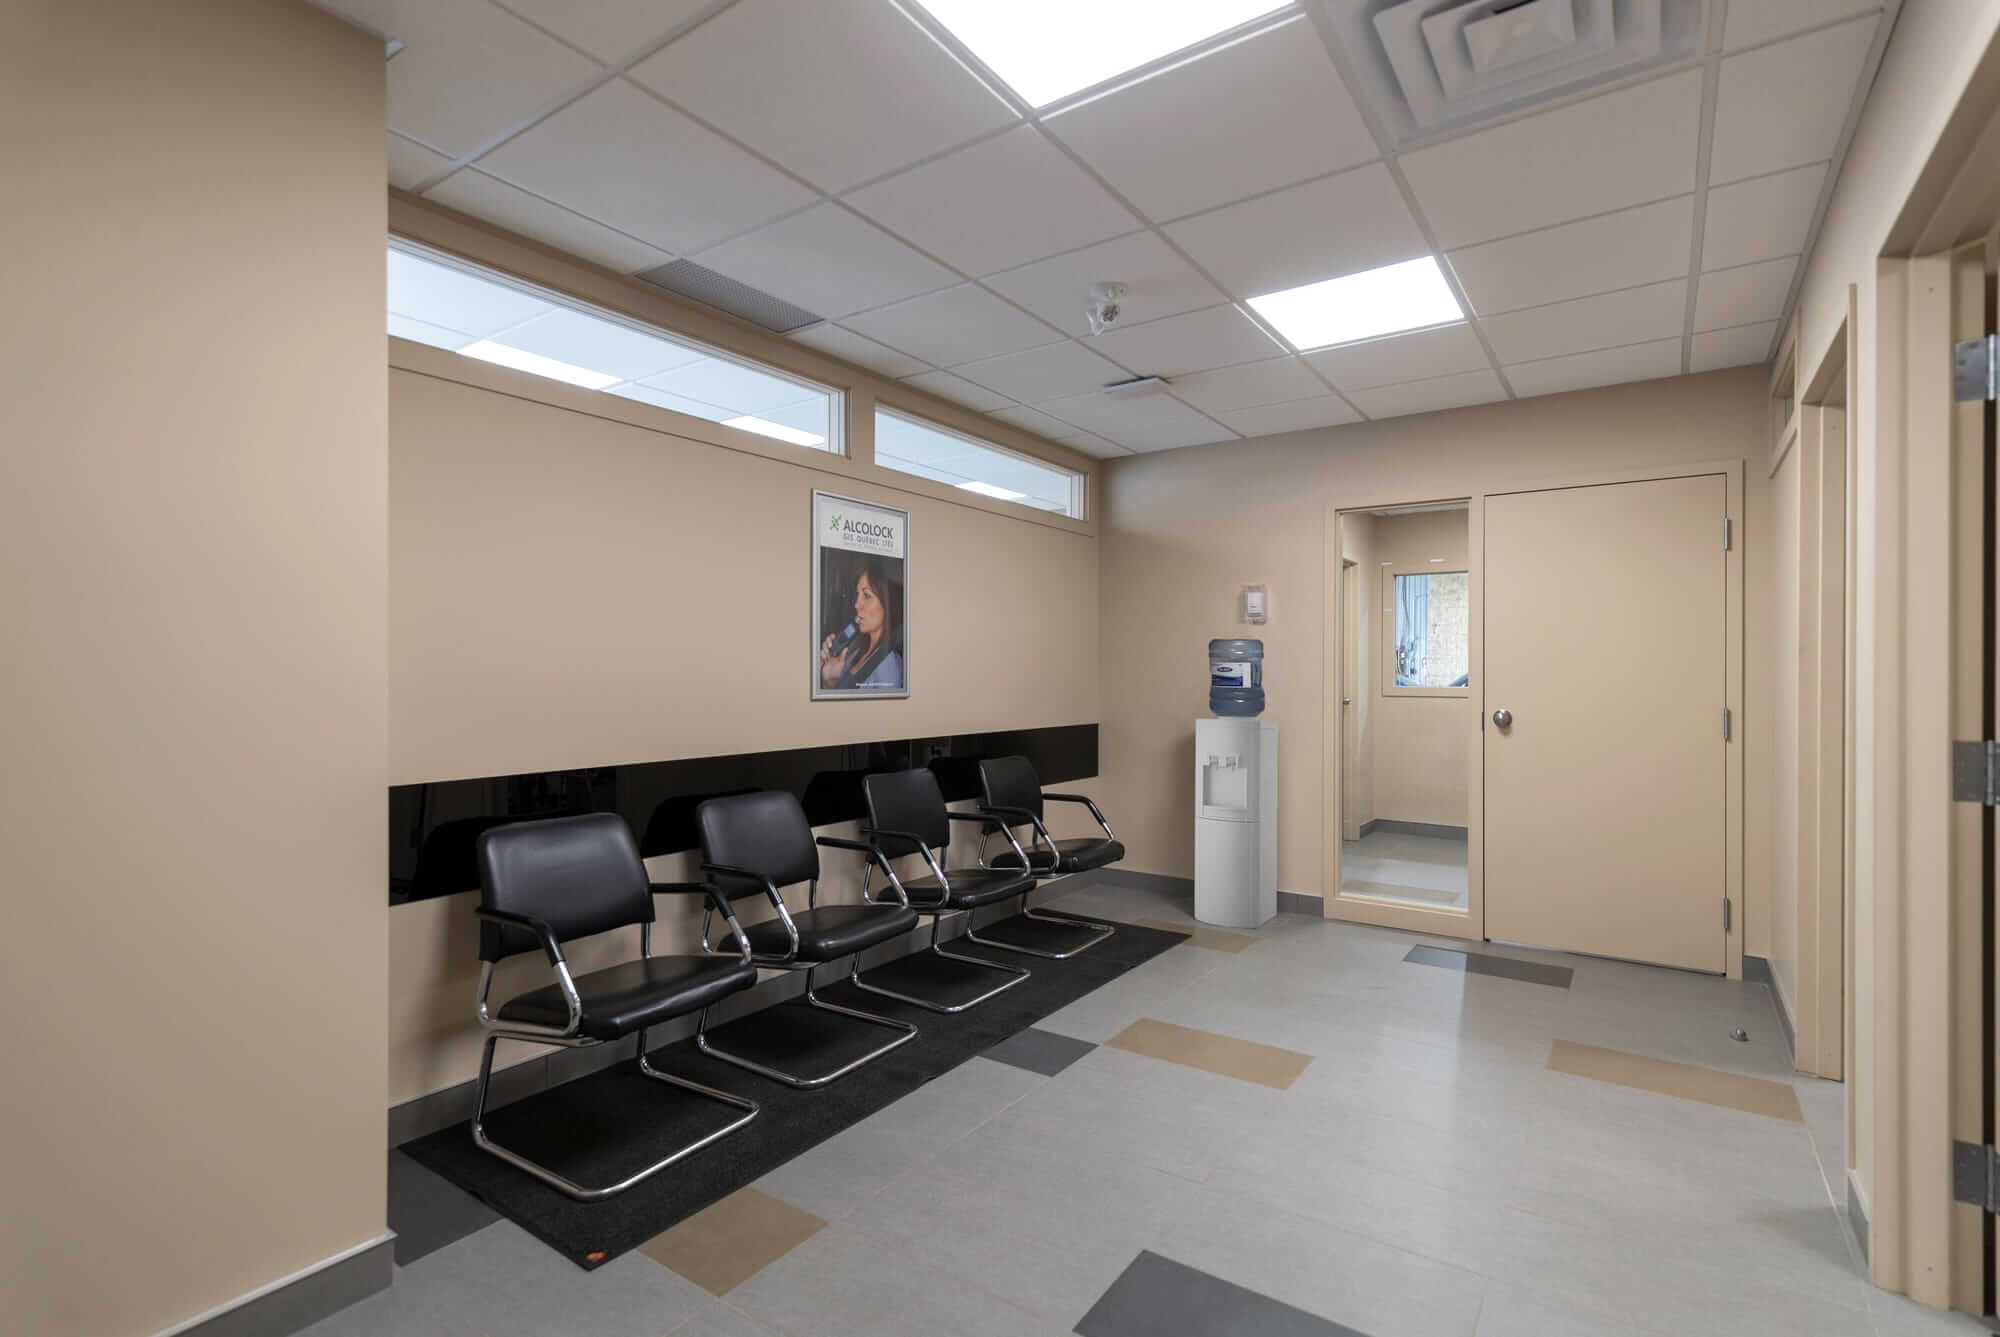 commercial space newly renovated - waiting room with black chairs